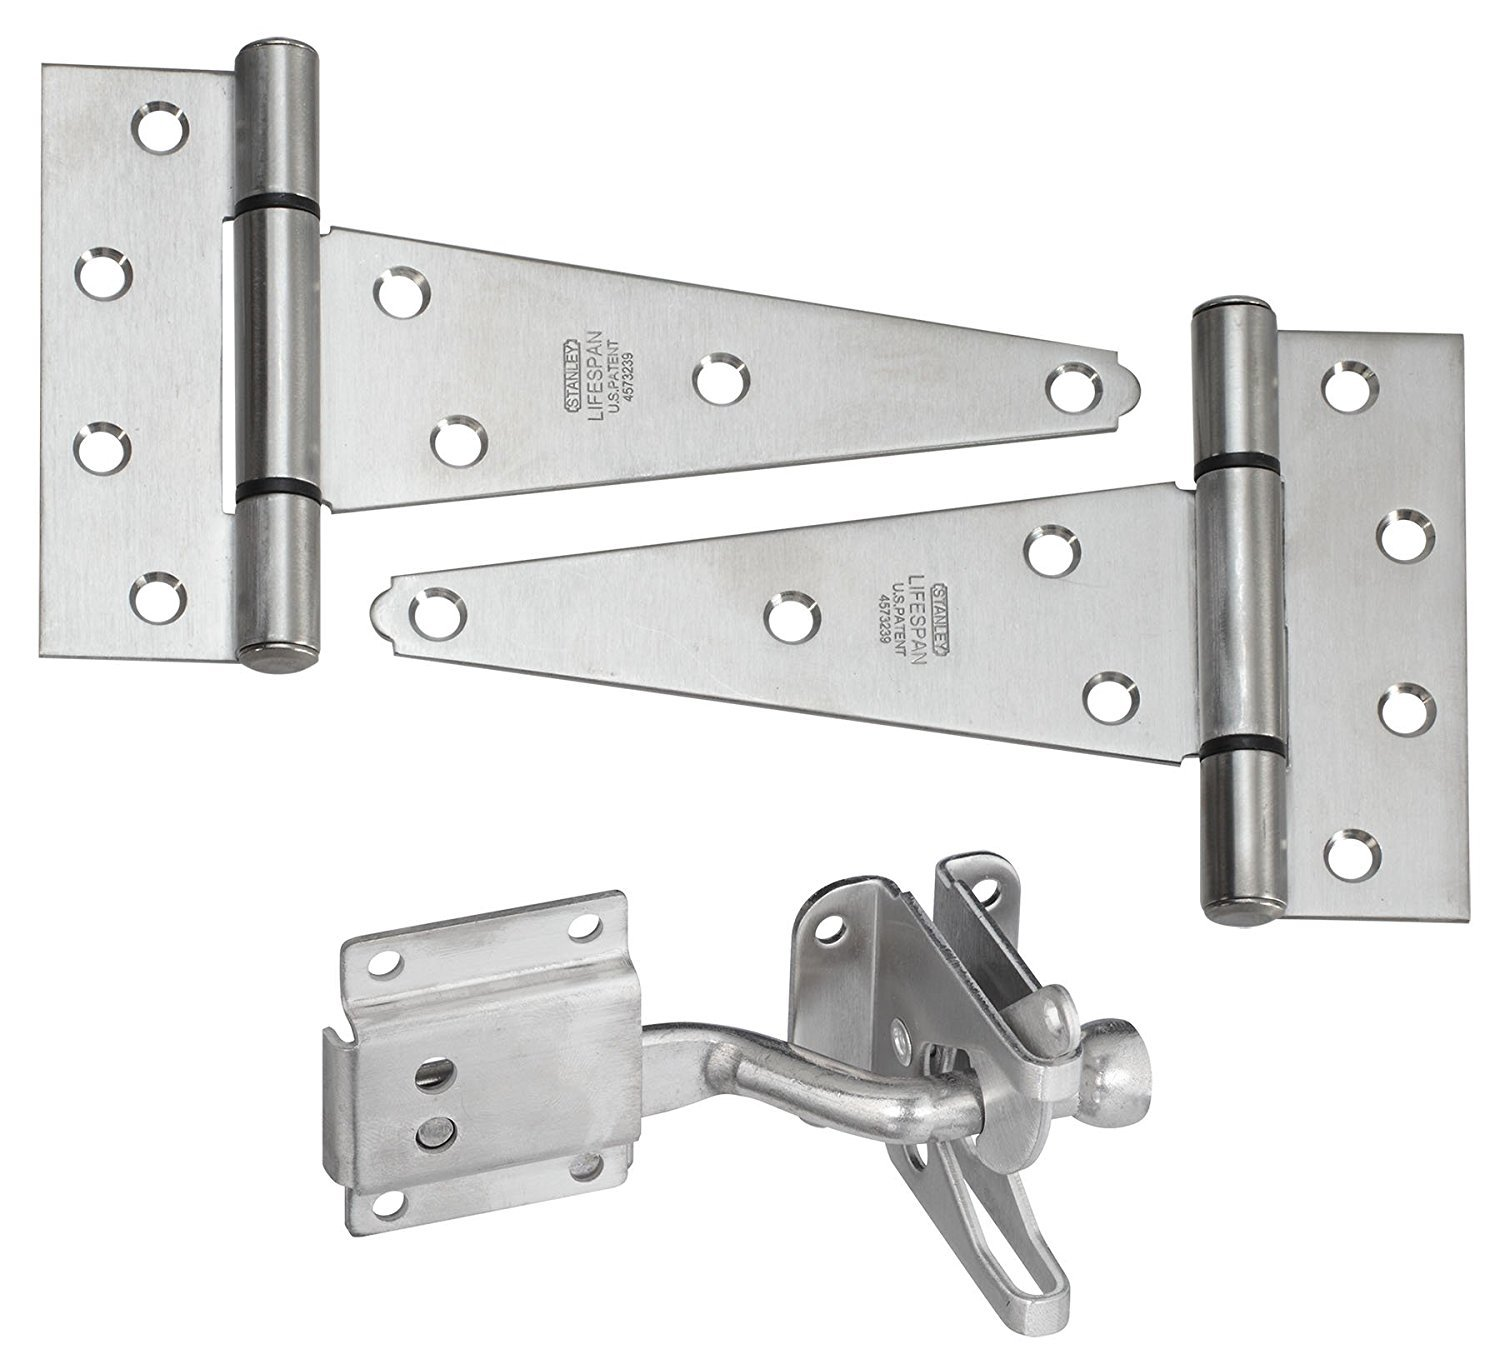 Stanley Hardware S824-300 CD1305 Gate Kits - Stainless Steel in Stainless Steel